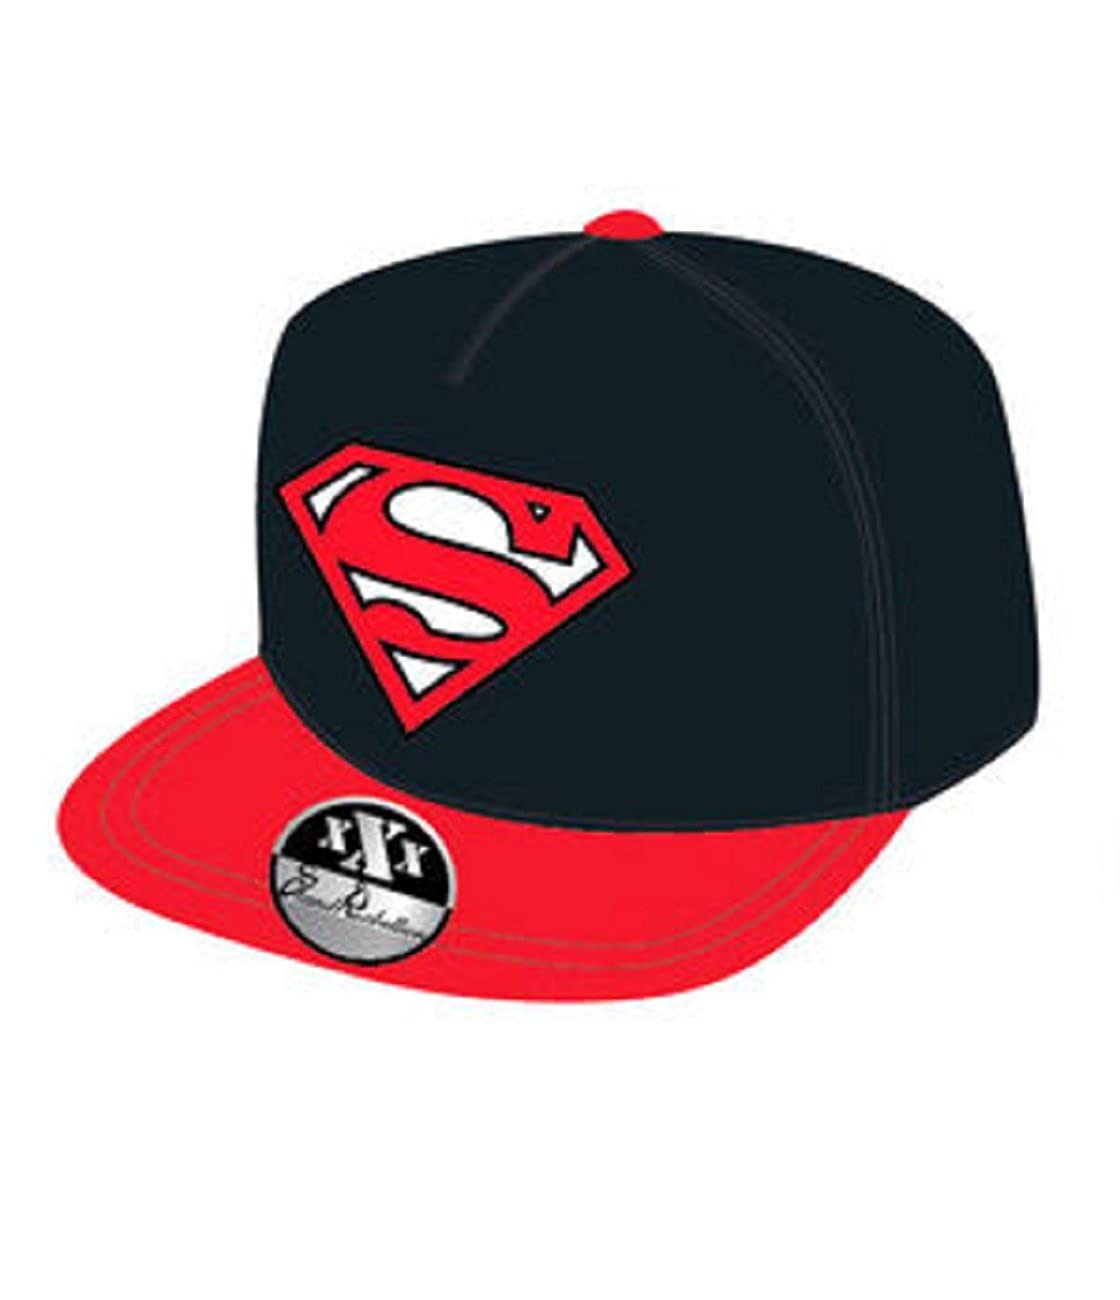 Gorra superman hip hop talla 54: Amazon.es: Ropa y accesorios